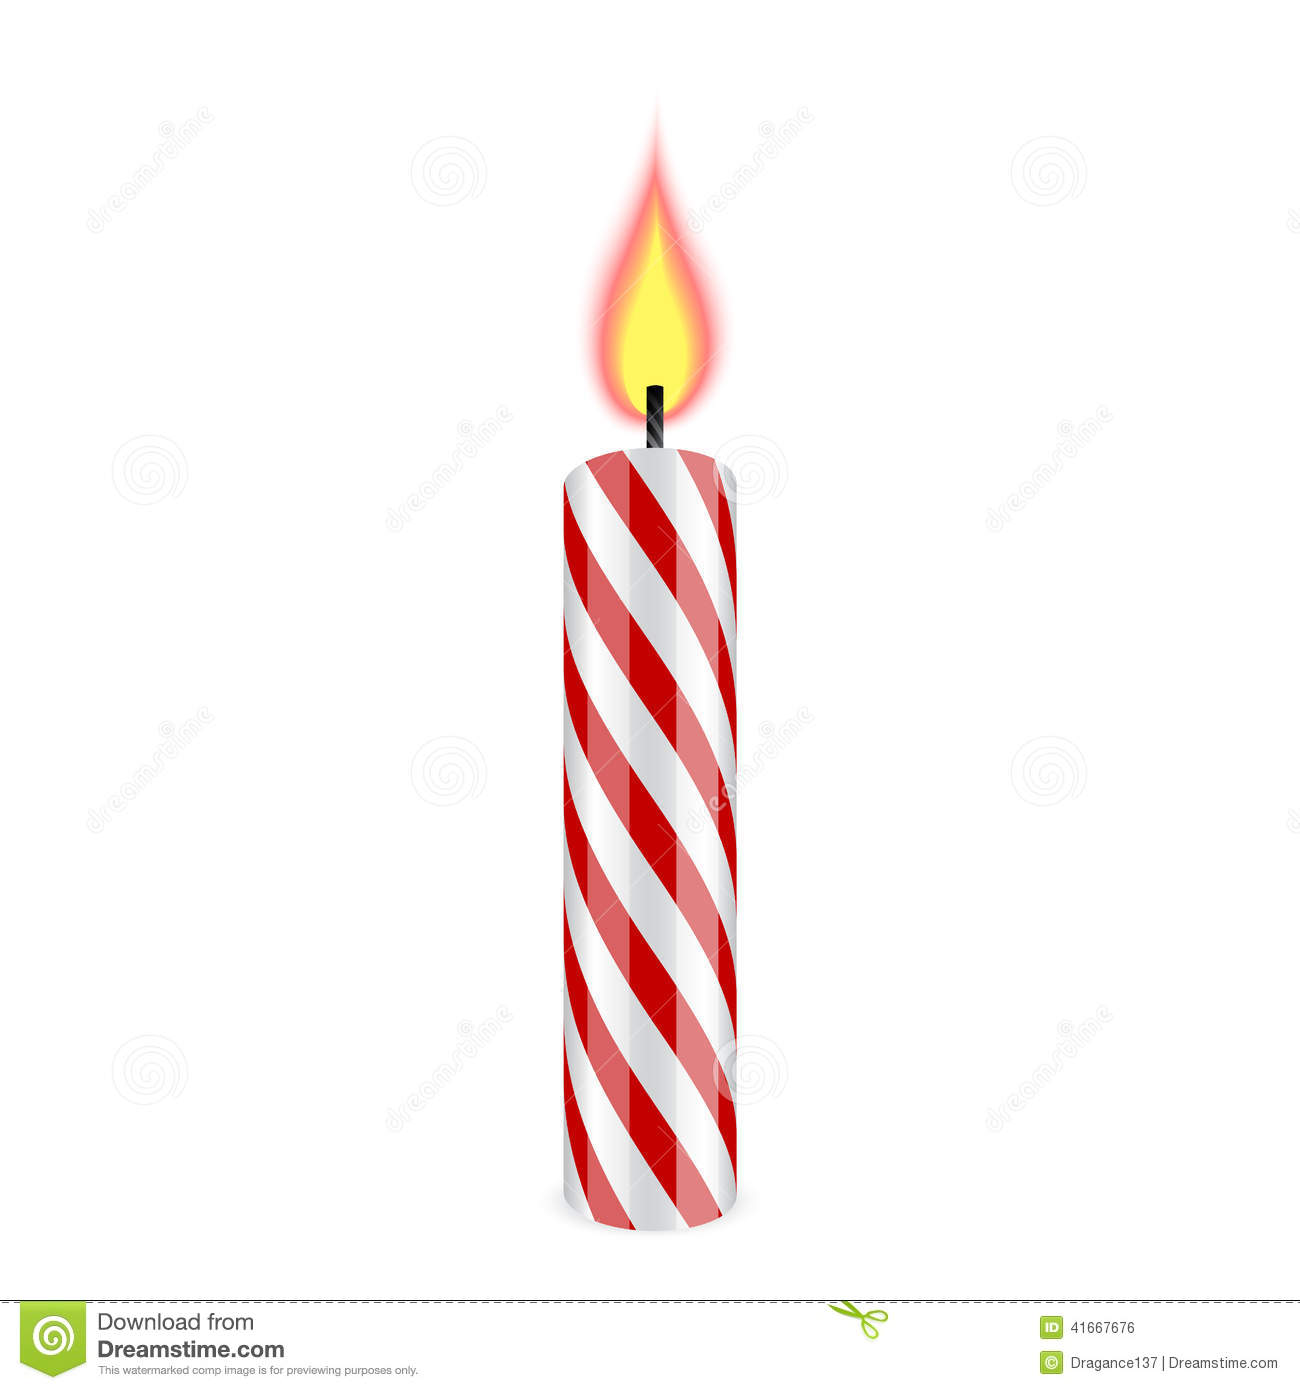 picture of birthday candles burning ; birthday-candle-red-white-burning-41667676